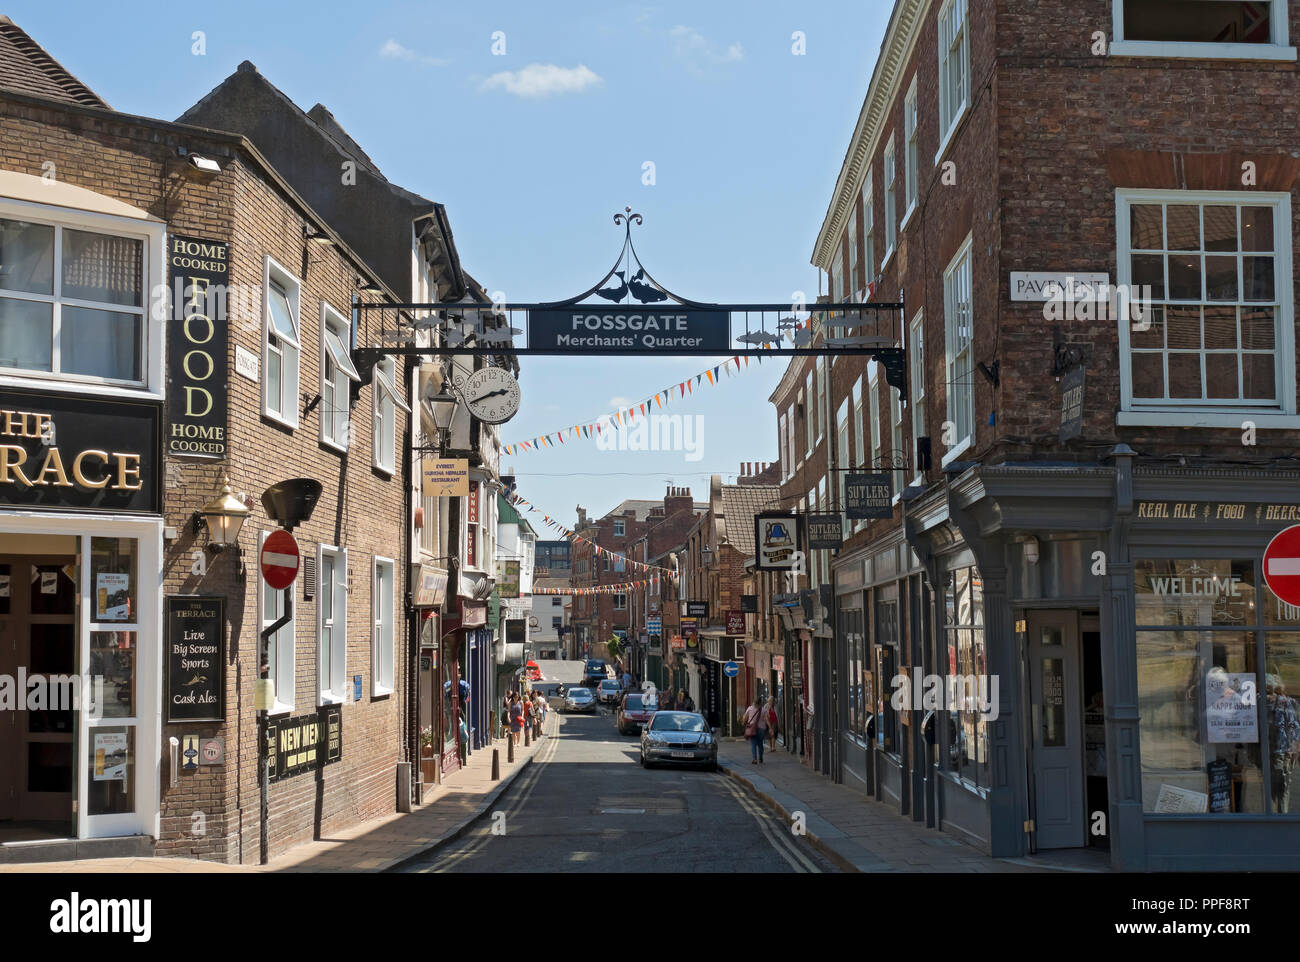 Bars and shops Fossgate York North Yorkshire England UK United Kingdom GB Great Britain - Stock Image